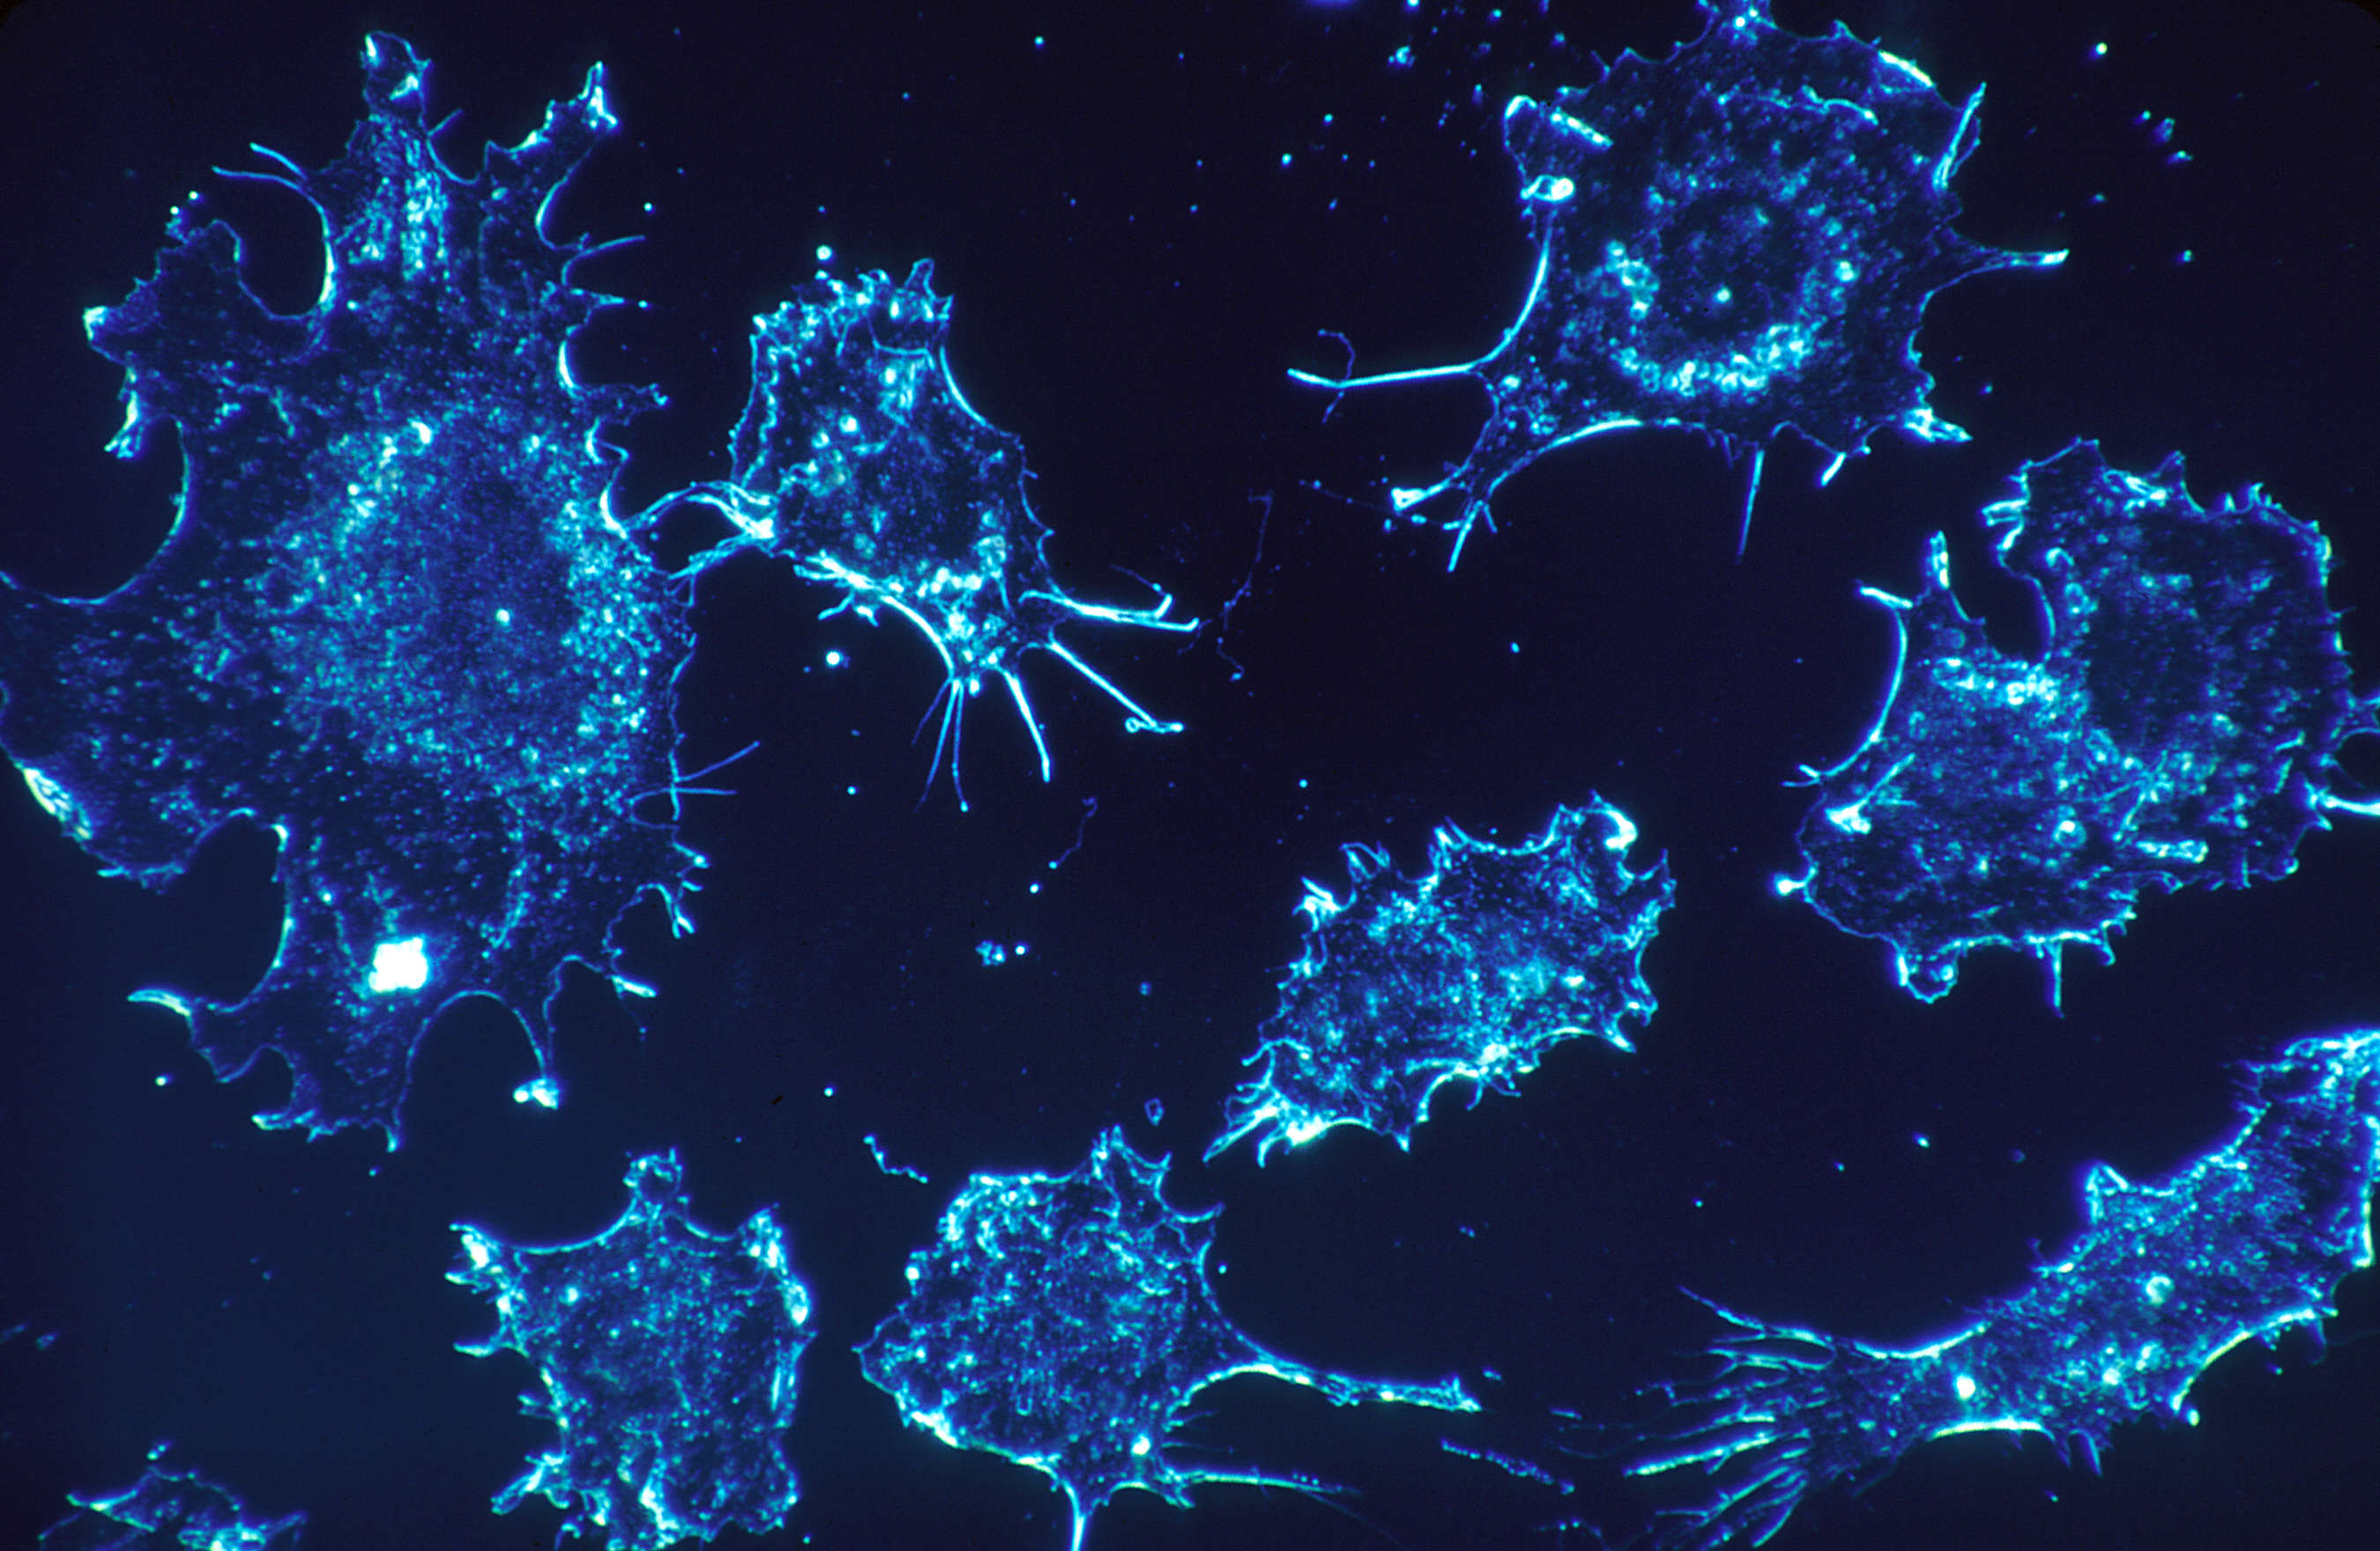 cancer4 Scientists Unveil Revolutionary Drug That Could Wipe Out Cancer